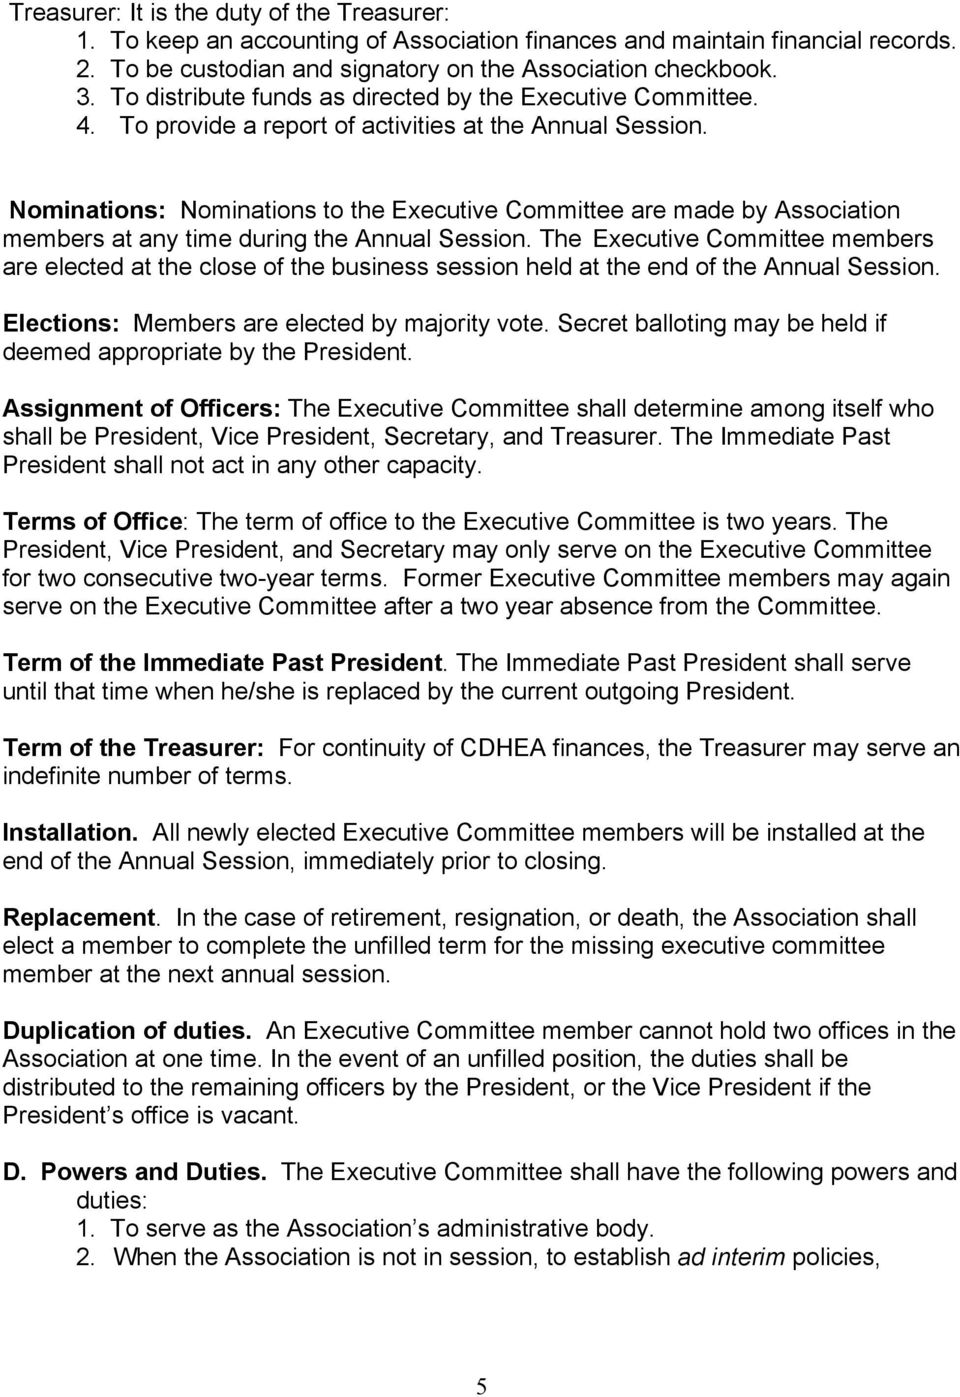 Nominations: Nominations to the Executive Committee are made by Association members at any time during the Annual Session.